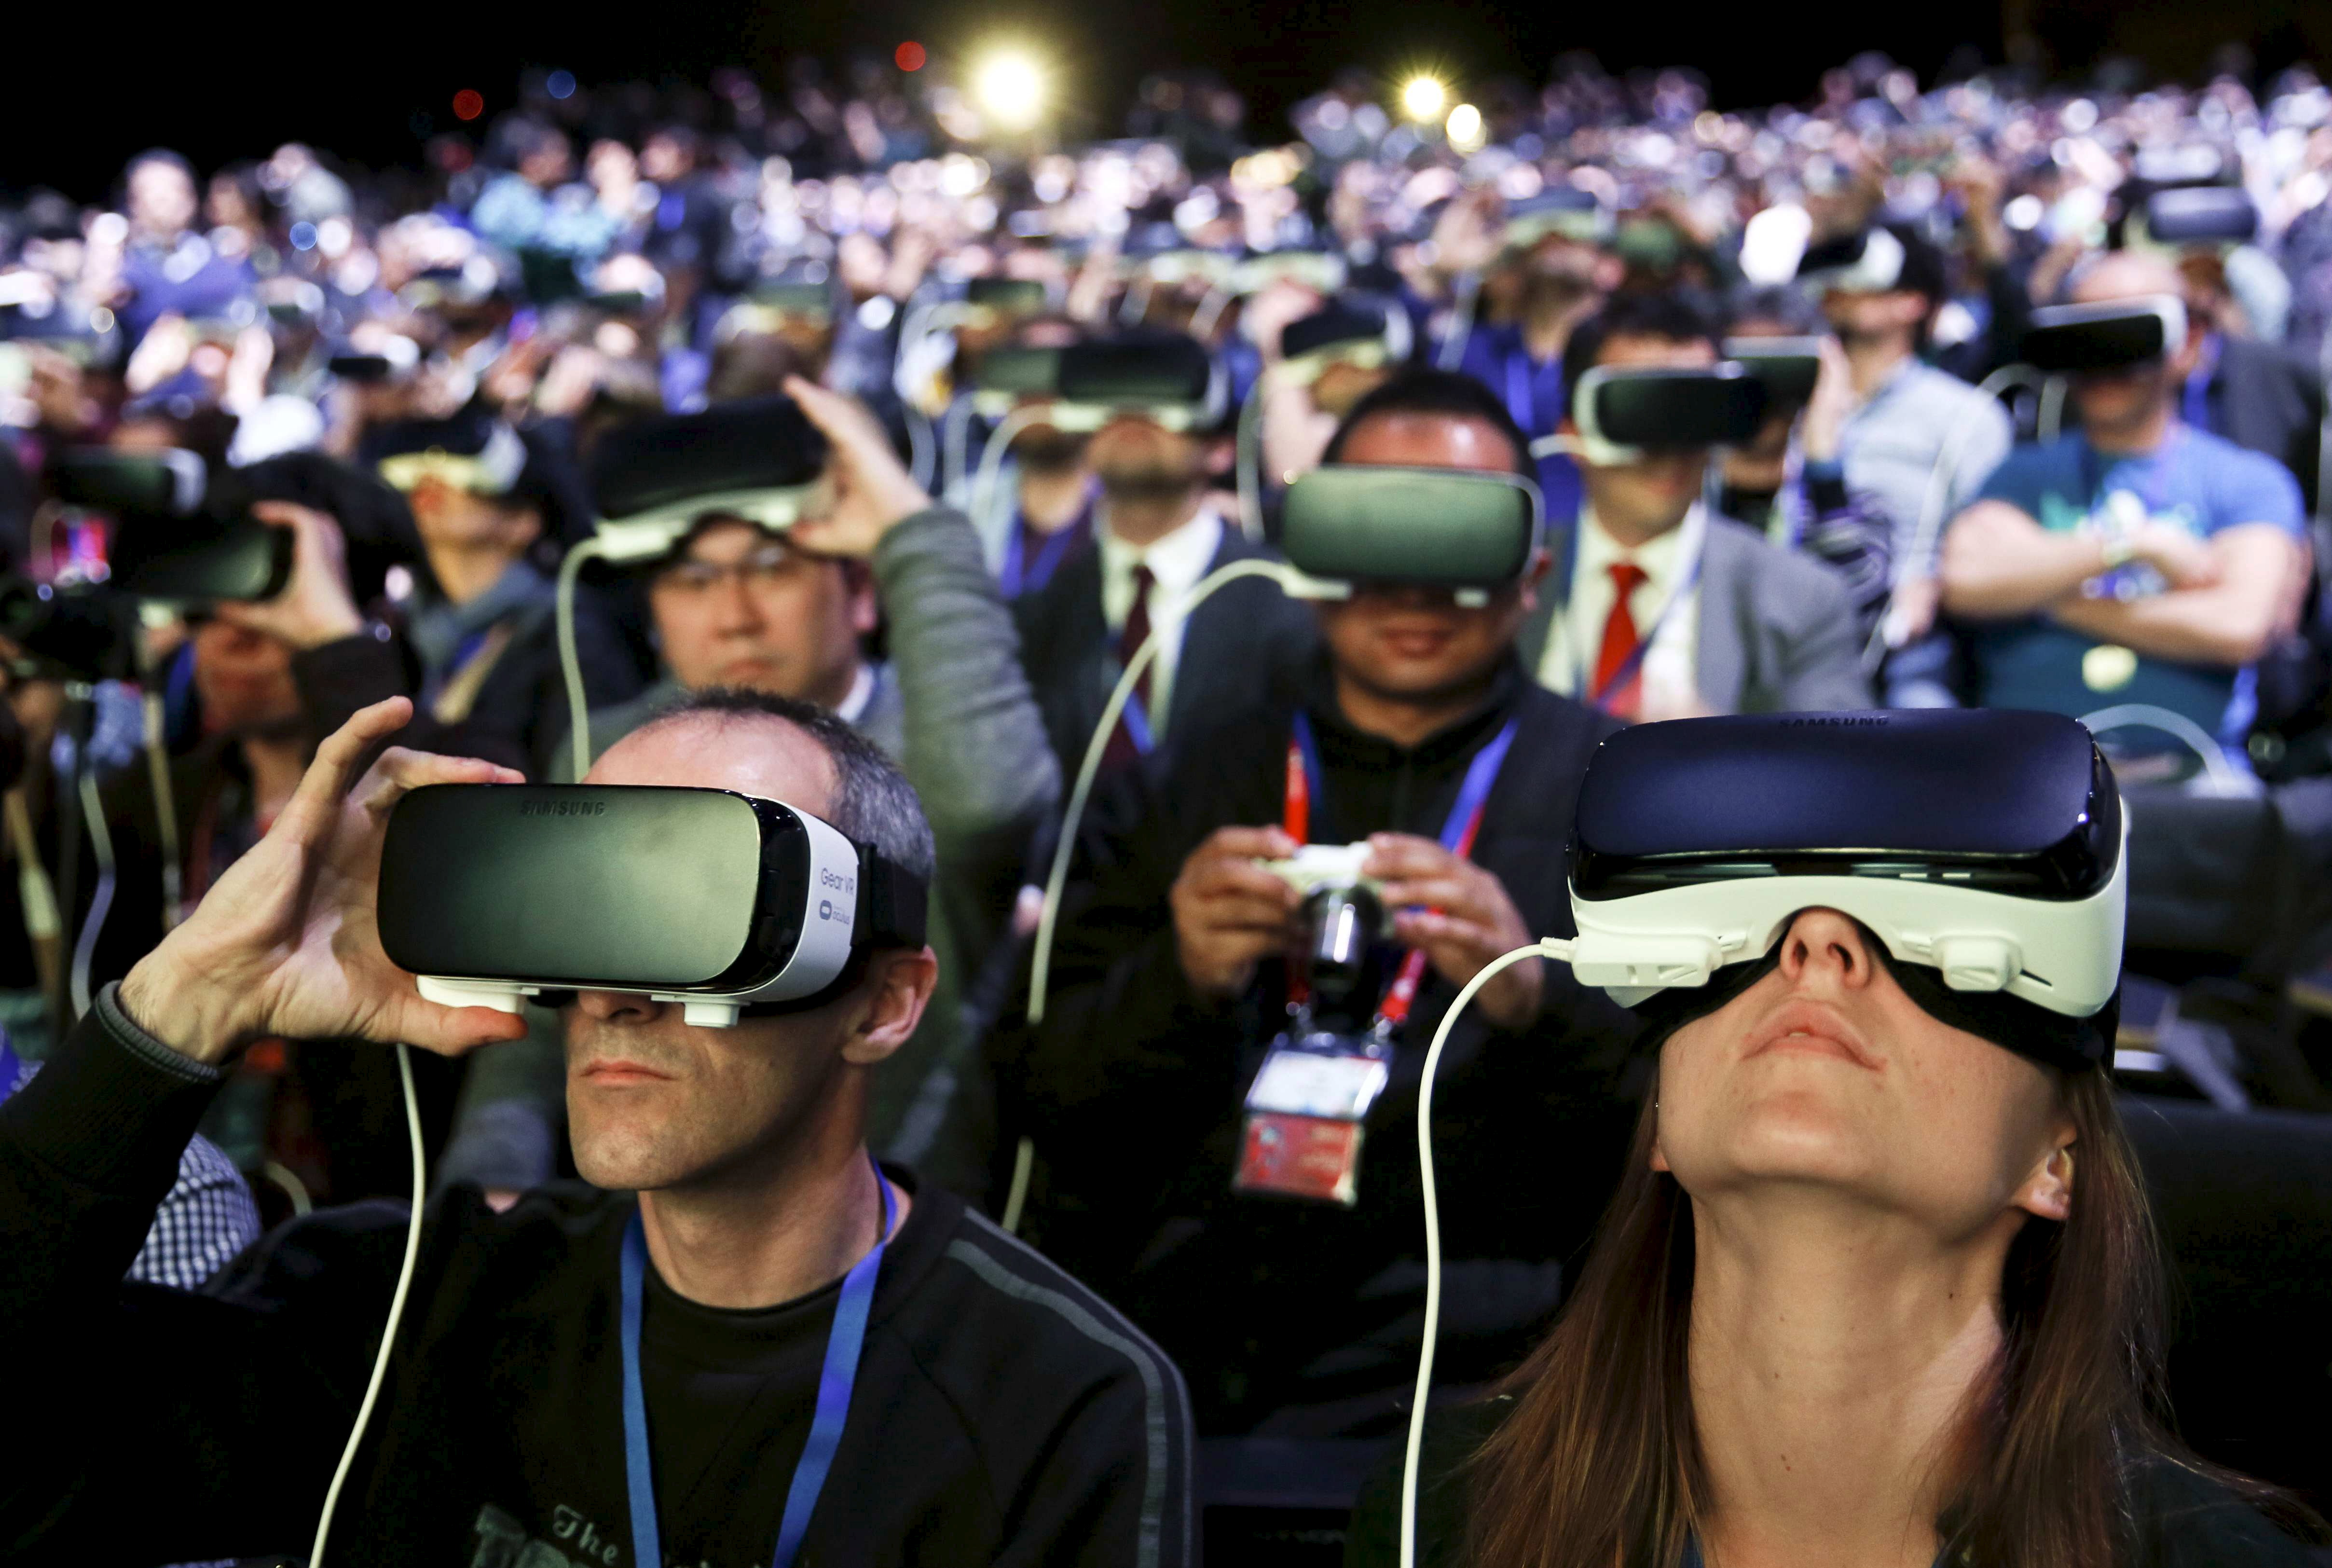 People wear Samsung Gear VR devices as they attend the launching ceremony of the new Samsung S7 and S7 edge smartphones during the Mobile World Congress in Barcelona, Spain, February 21, 2016. REUTERS/Albert Gea      TPX IMAGES OF THE DAY      - RTX27XXM